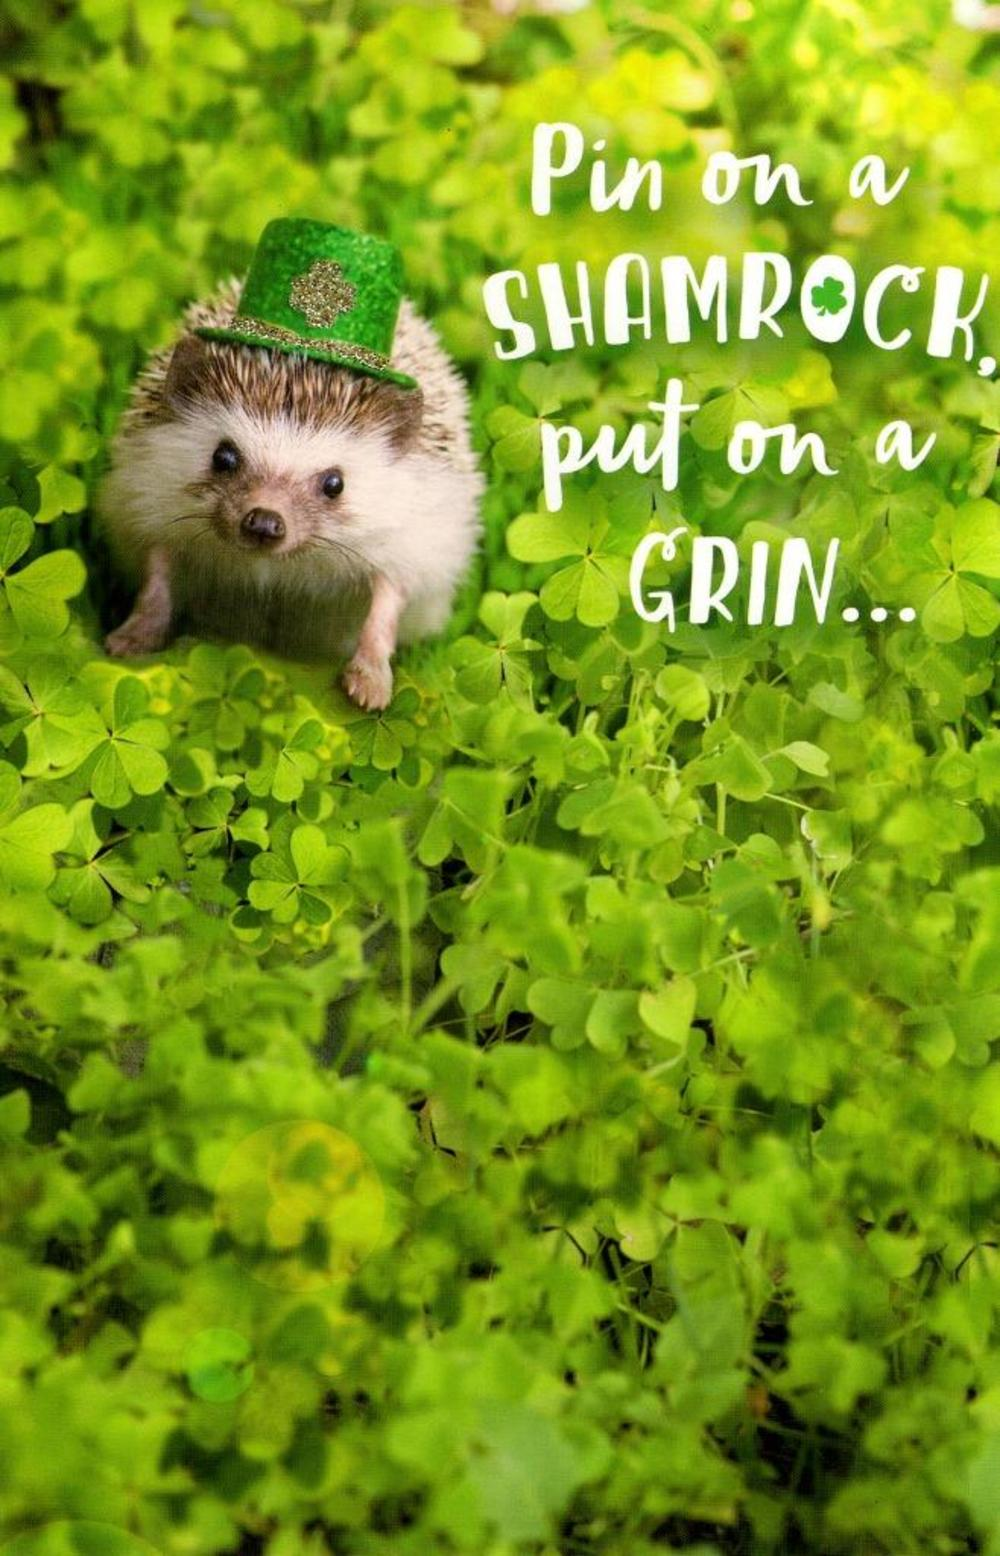 Cute Hedgehog St Patrick's Day Greeting Card